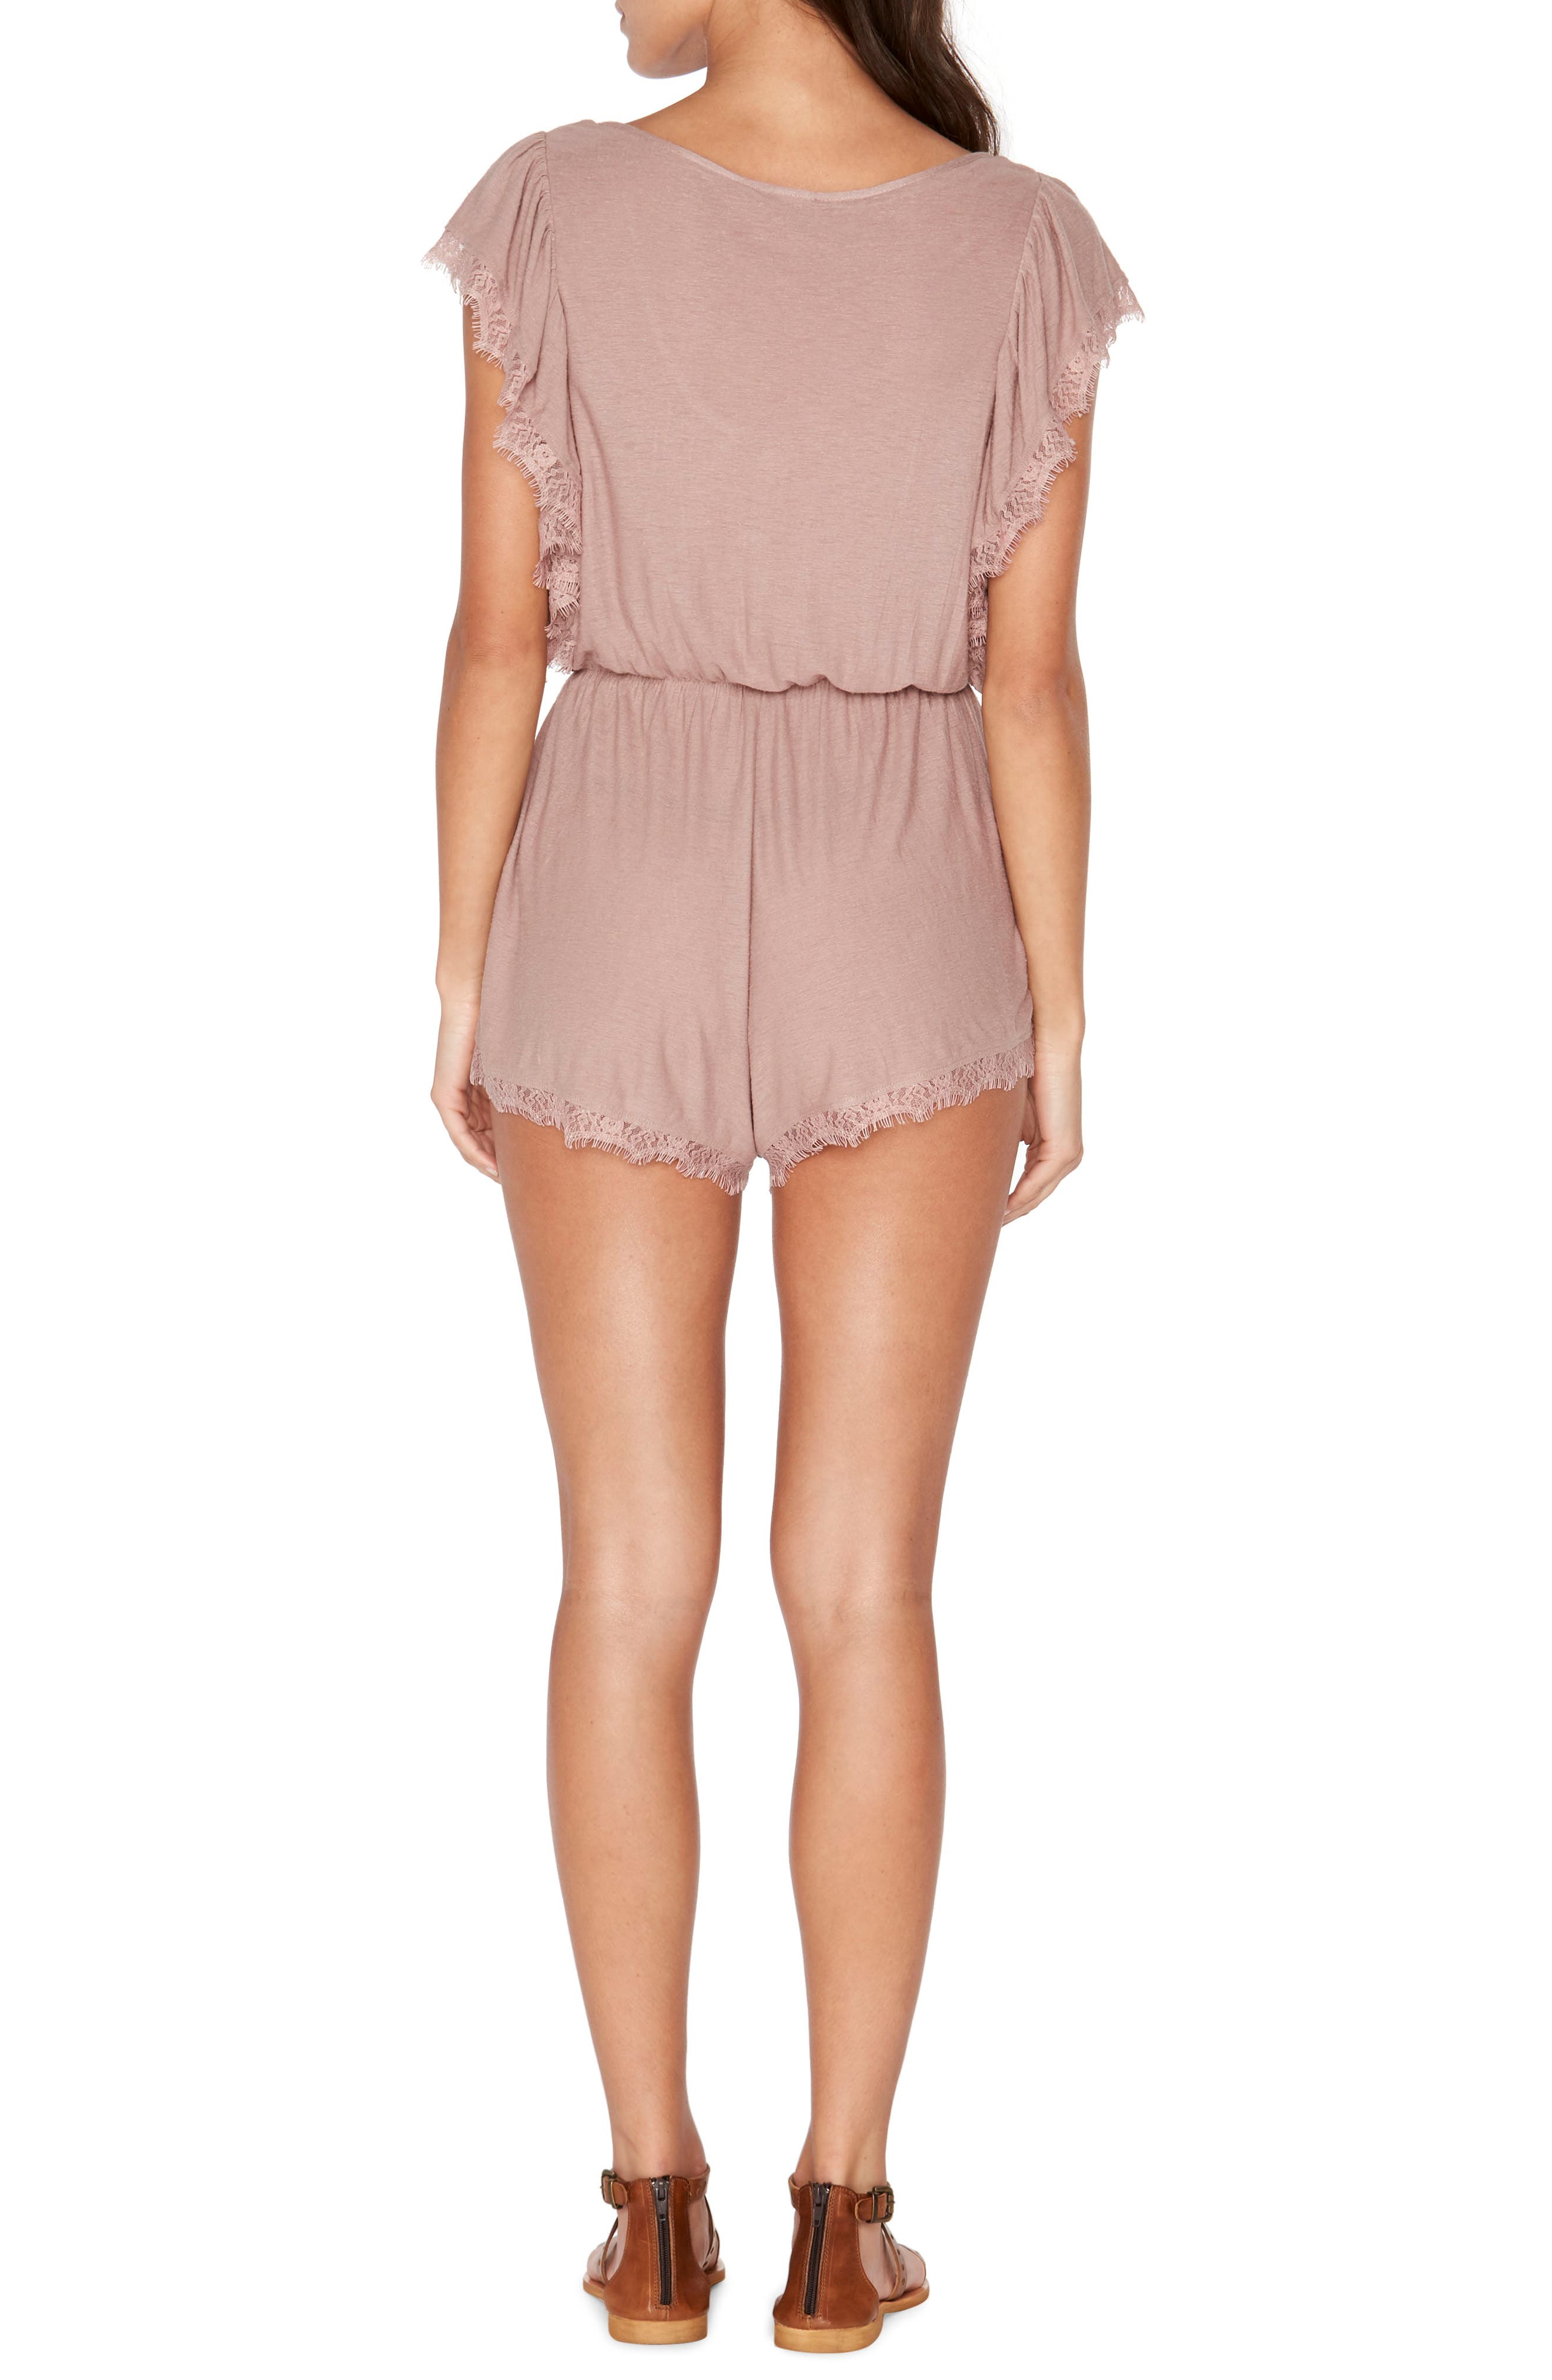 Sweet Life Romper,                             Alternate thumbnail 2, color,                             Dusty Pear